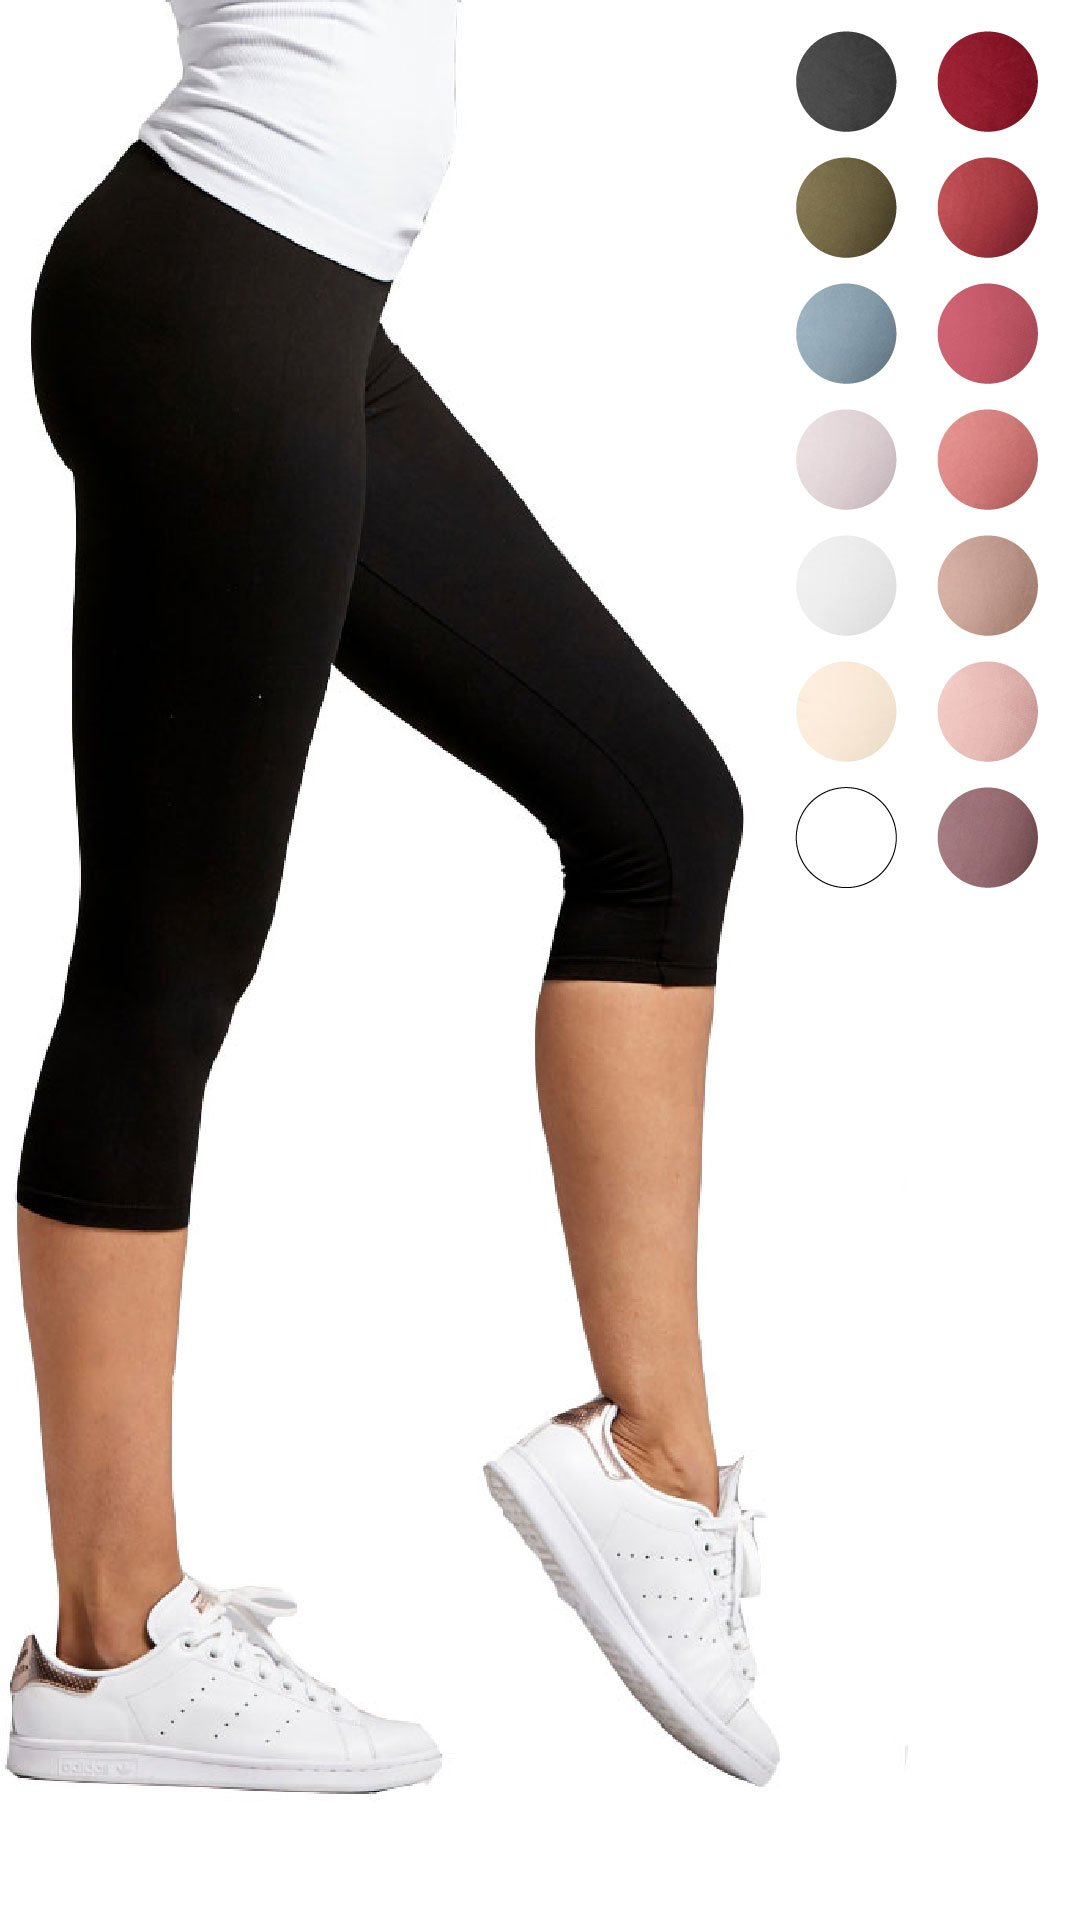 Conceited Premium Ultra Soft Capri Leggings - High Waist - Regular and Plus Size - 15 Color Black Small/Medium (0-12) by Conceited (Image #1)